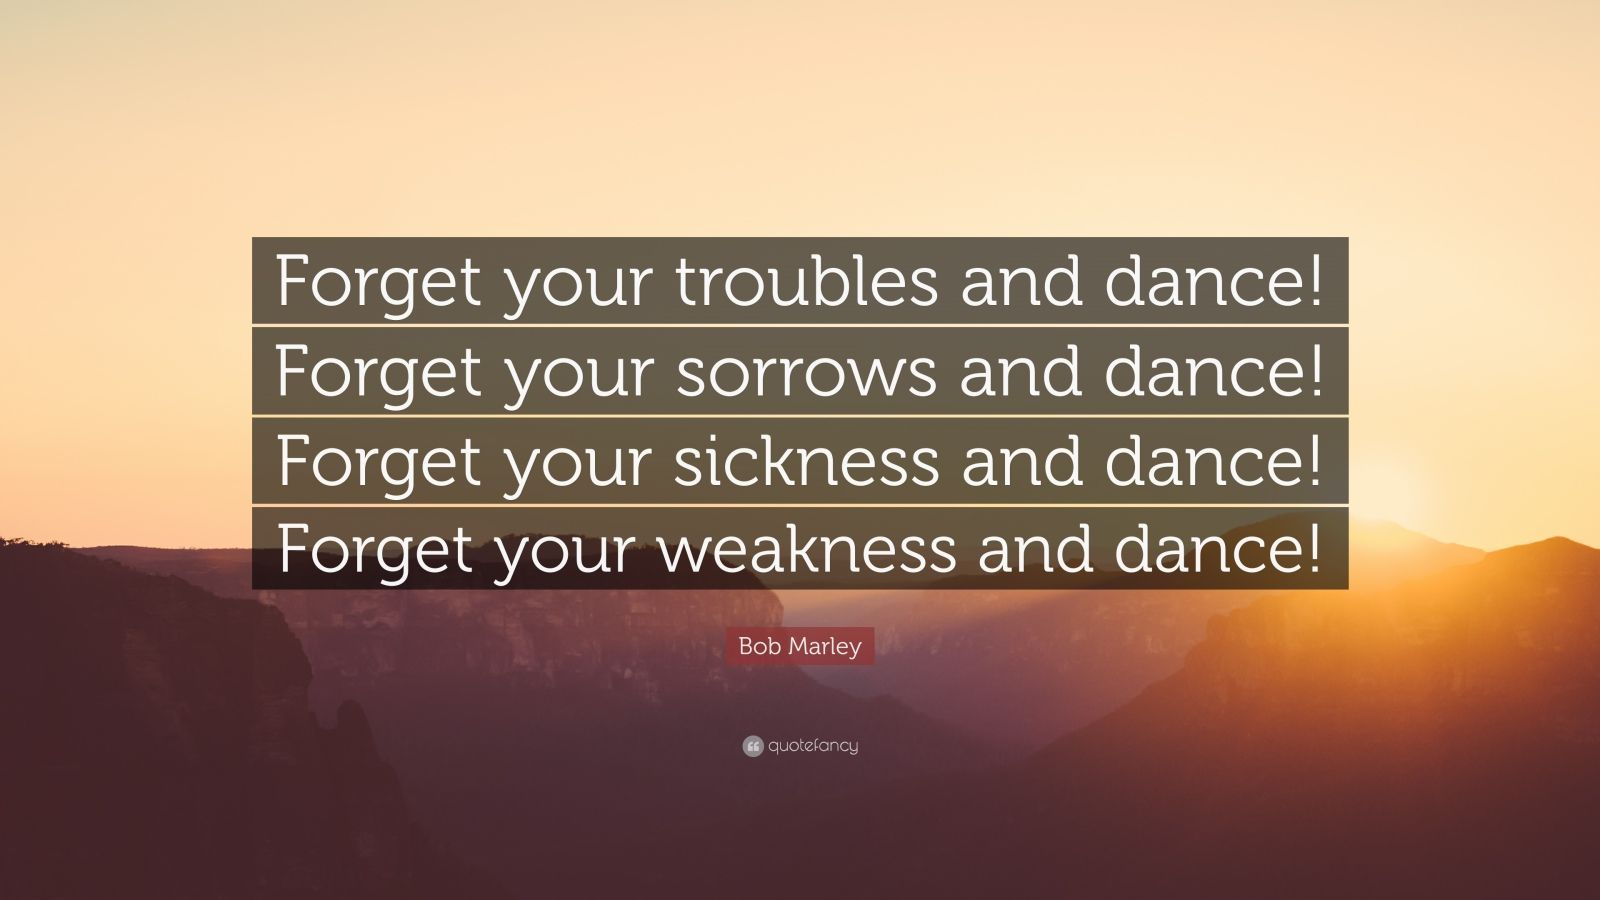 "Bob Marley Quote: ""Forget your troubles and dance! Forget your sorrows and dance! Forget your sickness and dance! Forget your weakness and dance!"""